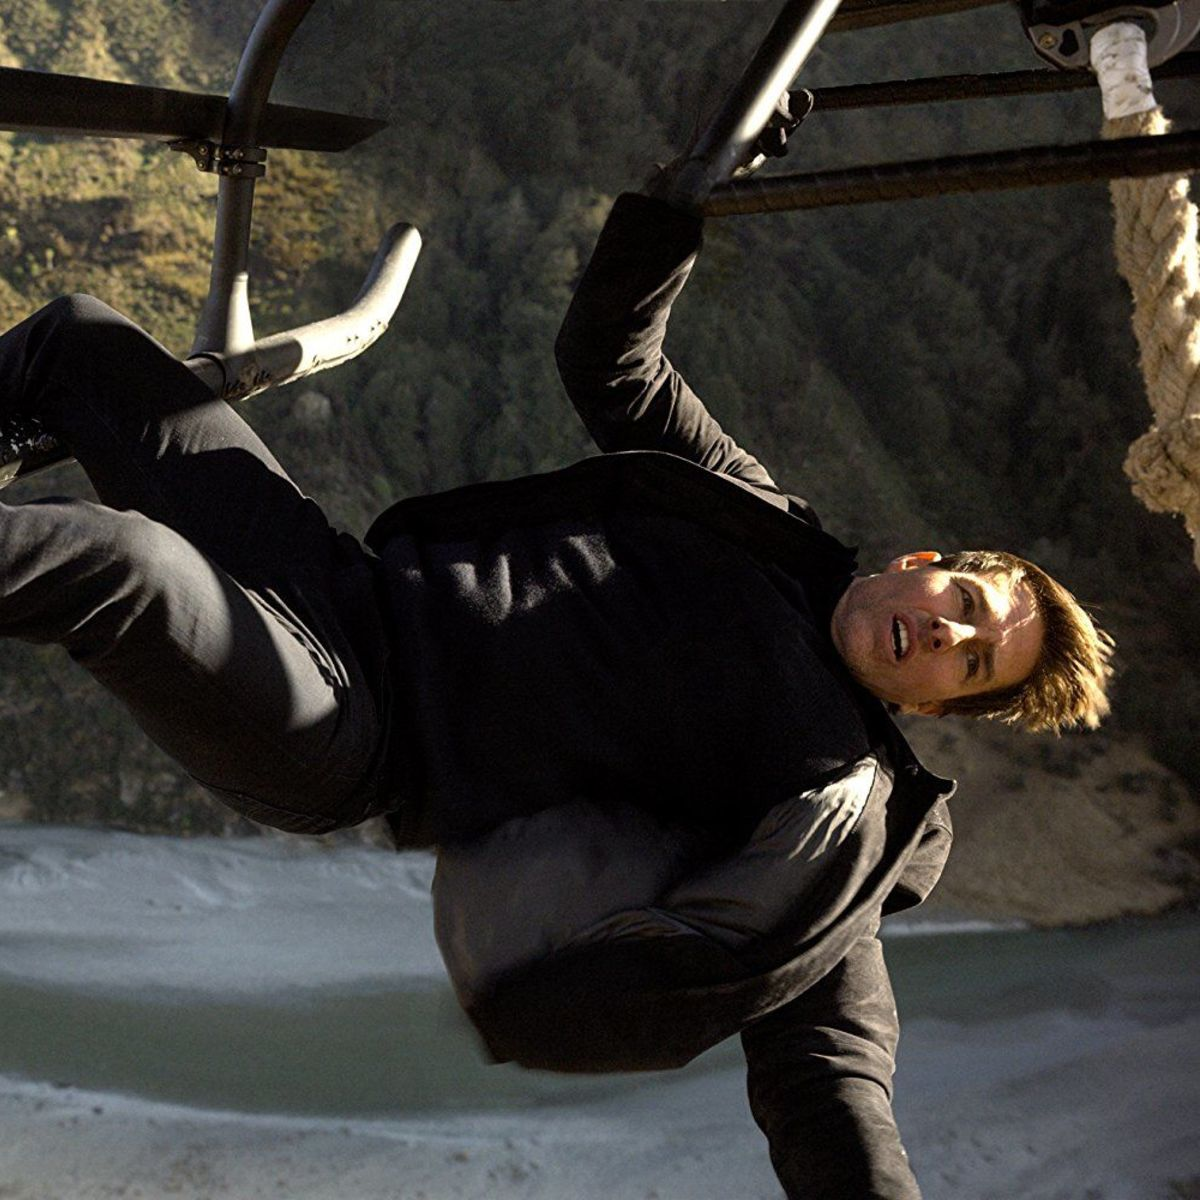 Mission Impossible Fallout stunt hero